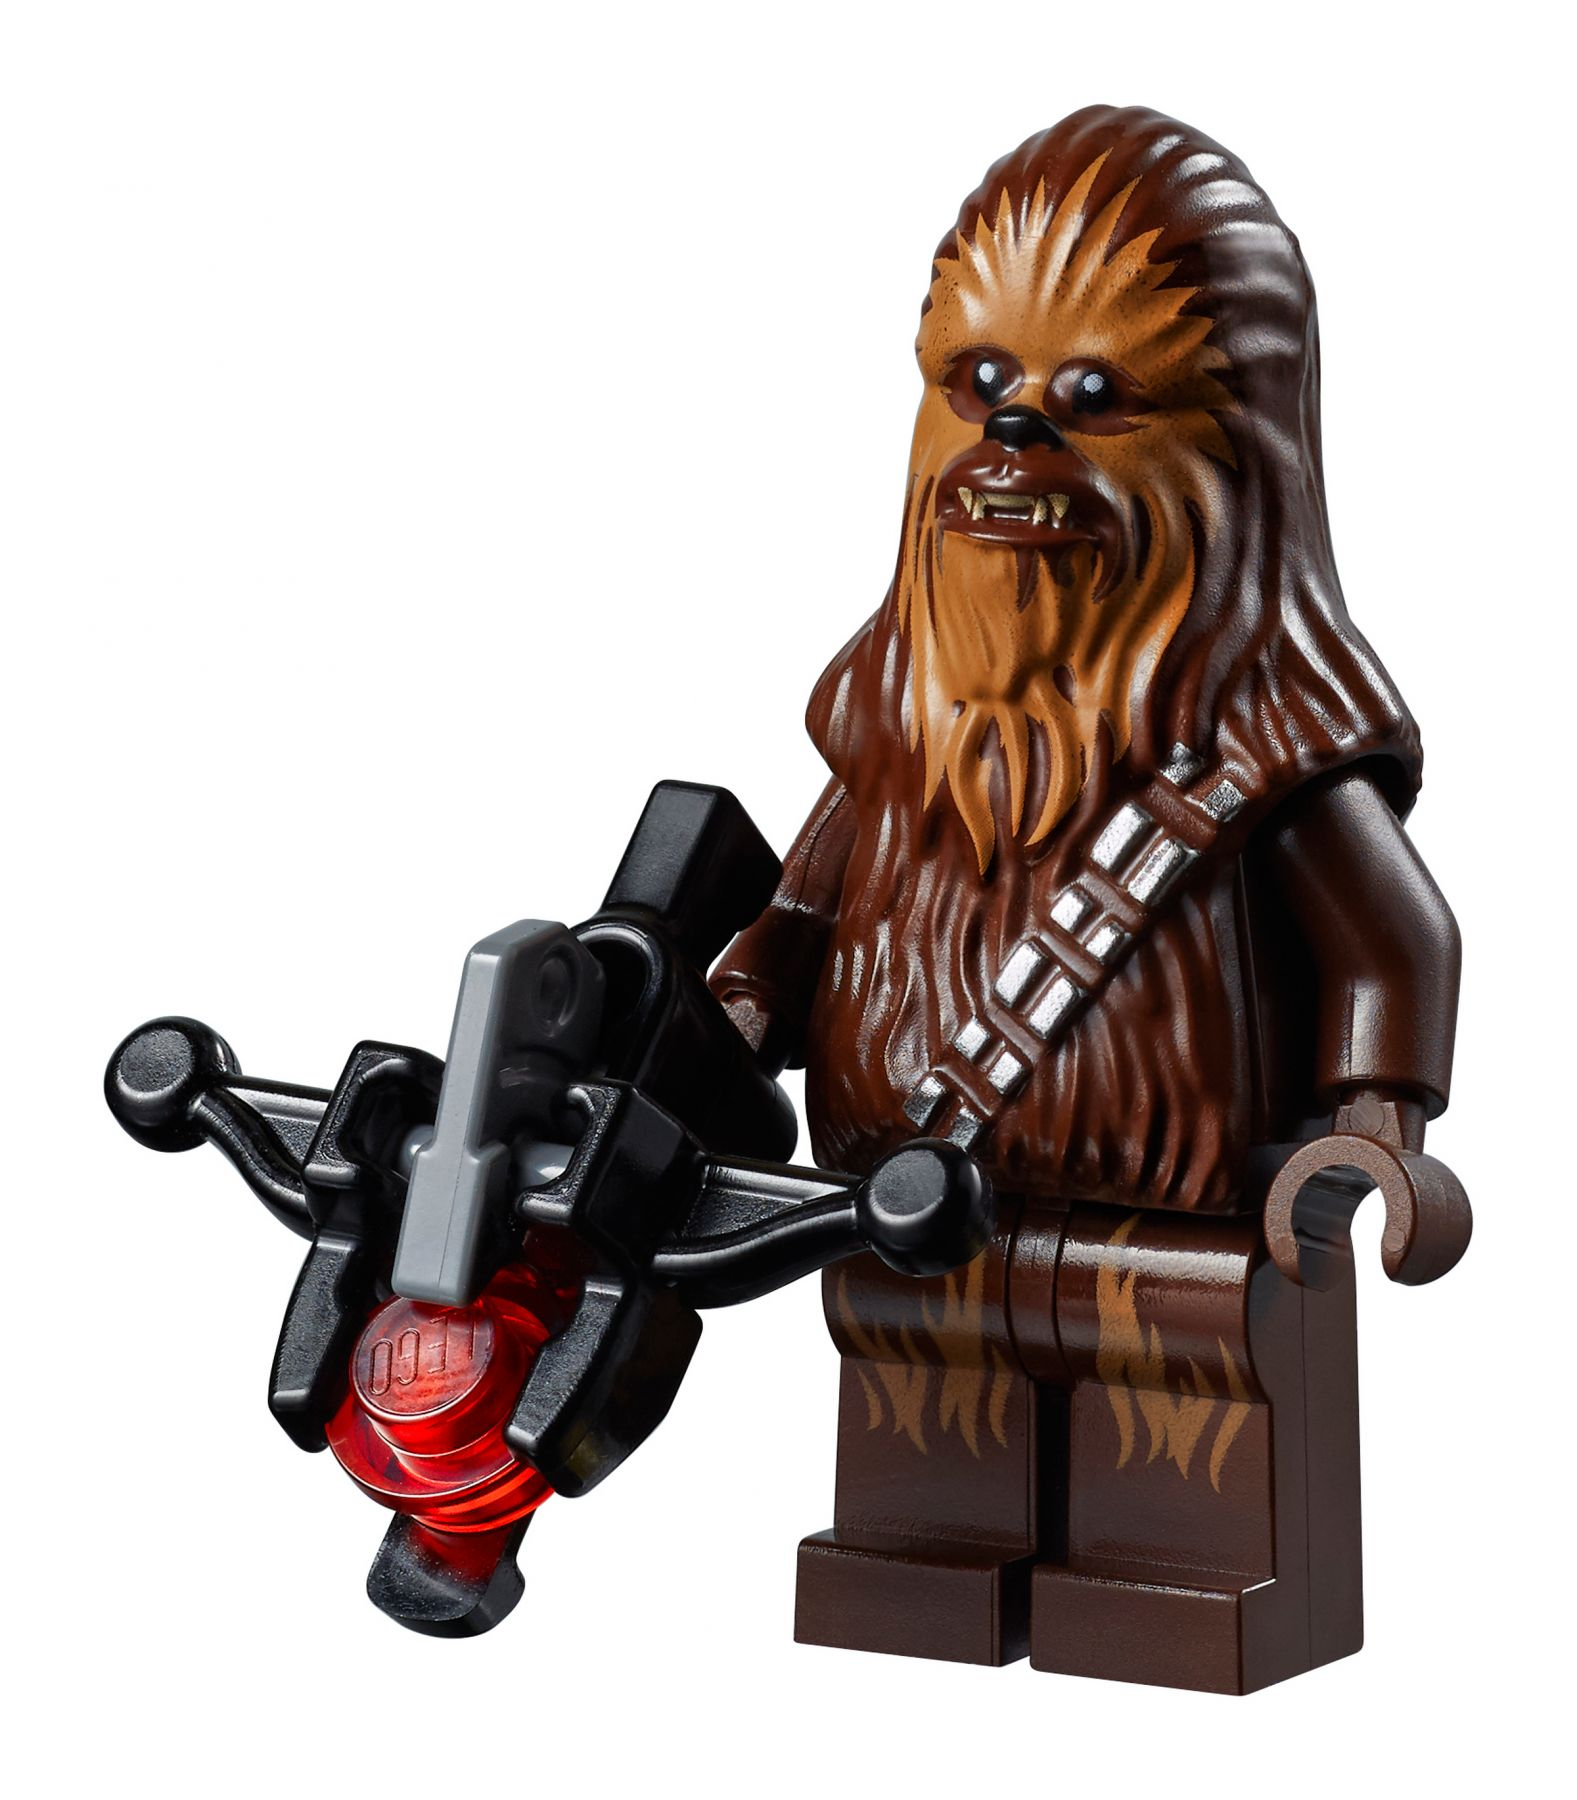 LEGO Star Wars 75222 Verrat in Cloud City™ LEGO_75222_alt17.jpg